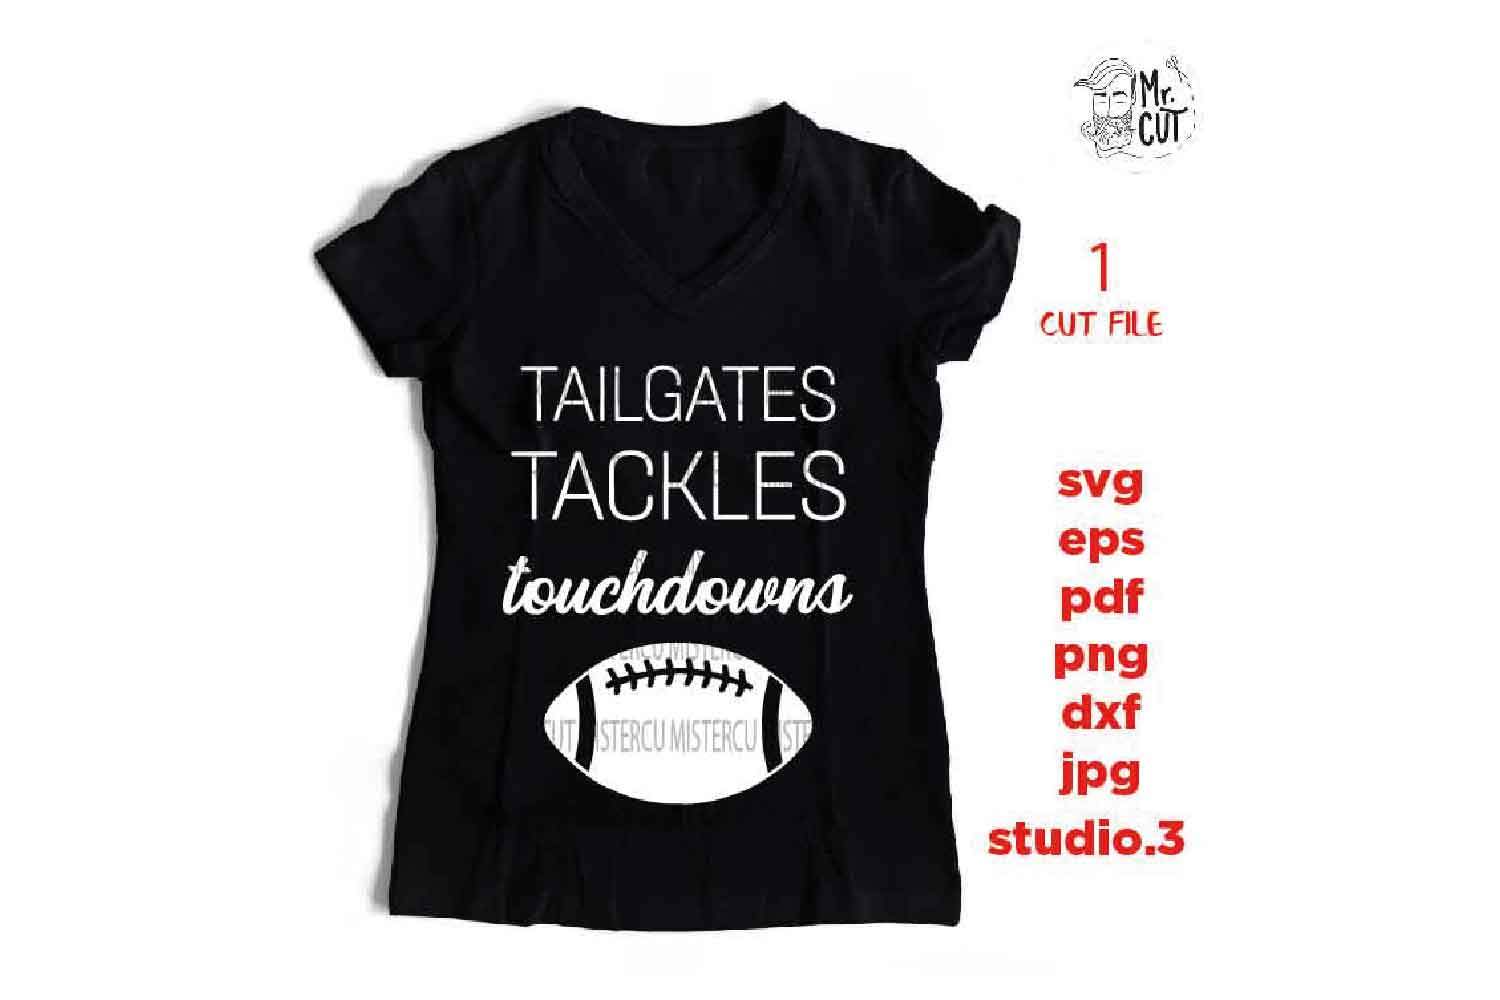 Tailgates Tackles Touchdowns svg , sports SVG, PNG, Dxf, eps example image 2